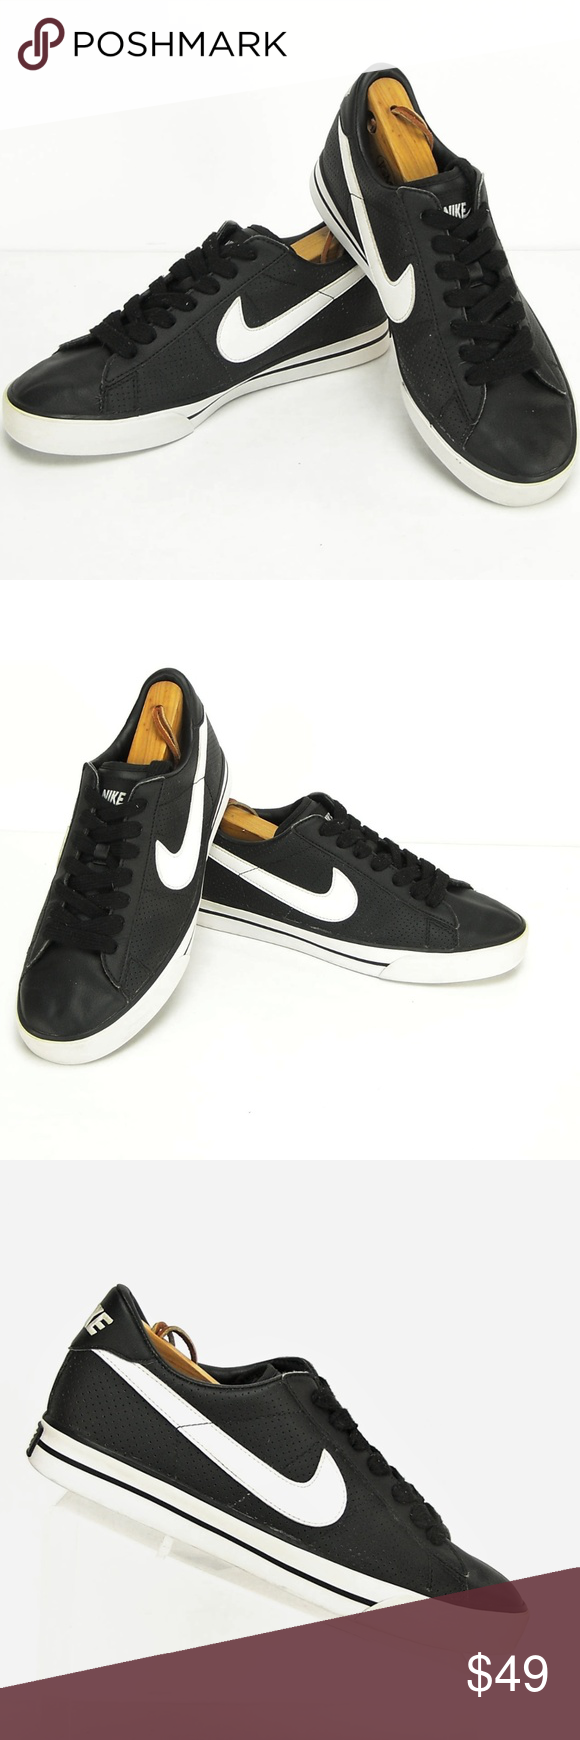 Nike Sweet Classic Low Leather Black White Sneaker Nike Sweet Classic Low  Leather Black White 318333-011 Men s Size 9 Mint Condition. 28e675ce9